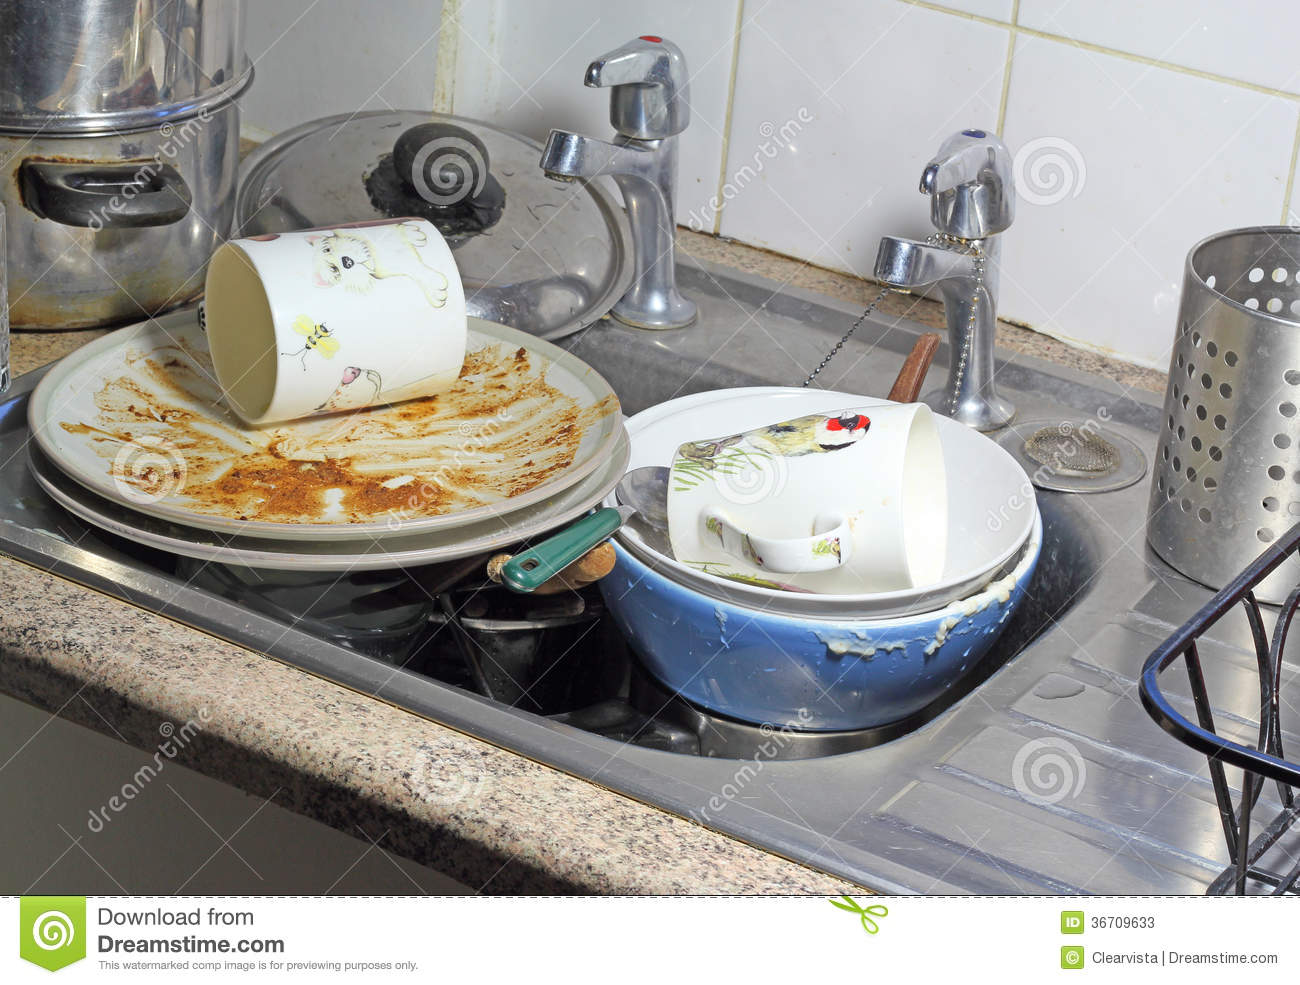 Dirty Dishes In A Sink For Washing Up. Stock Image - Image of dirty ...